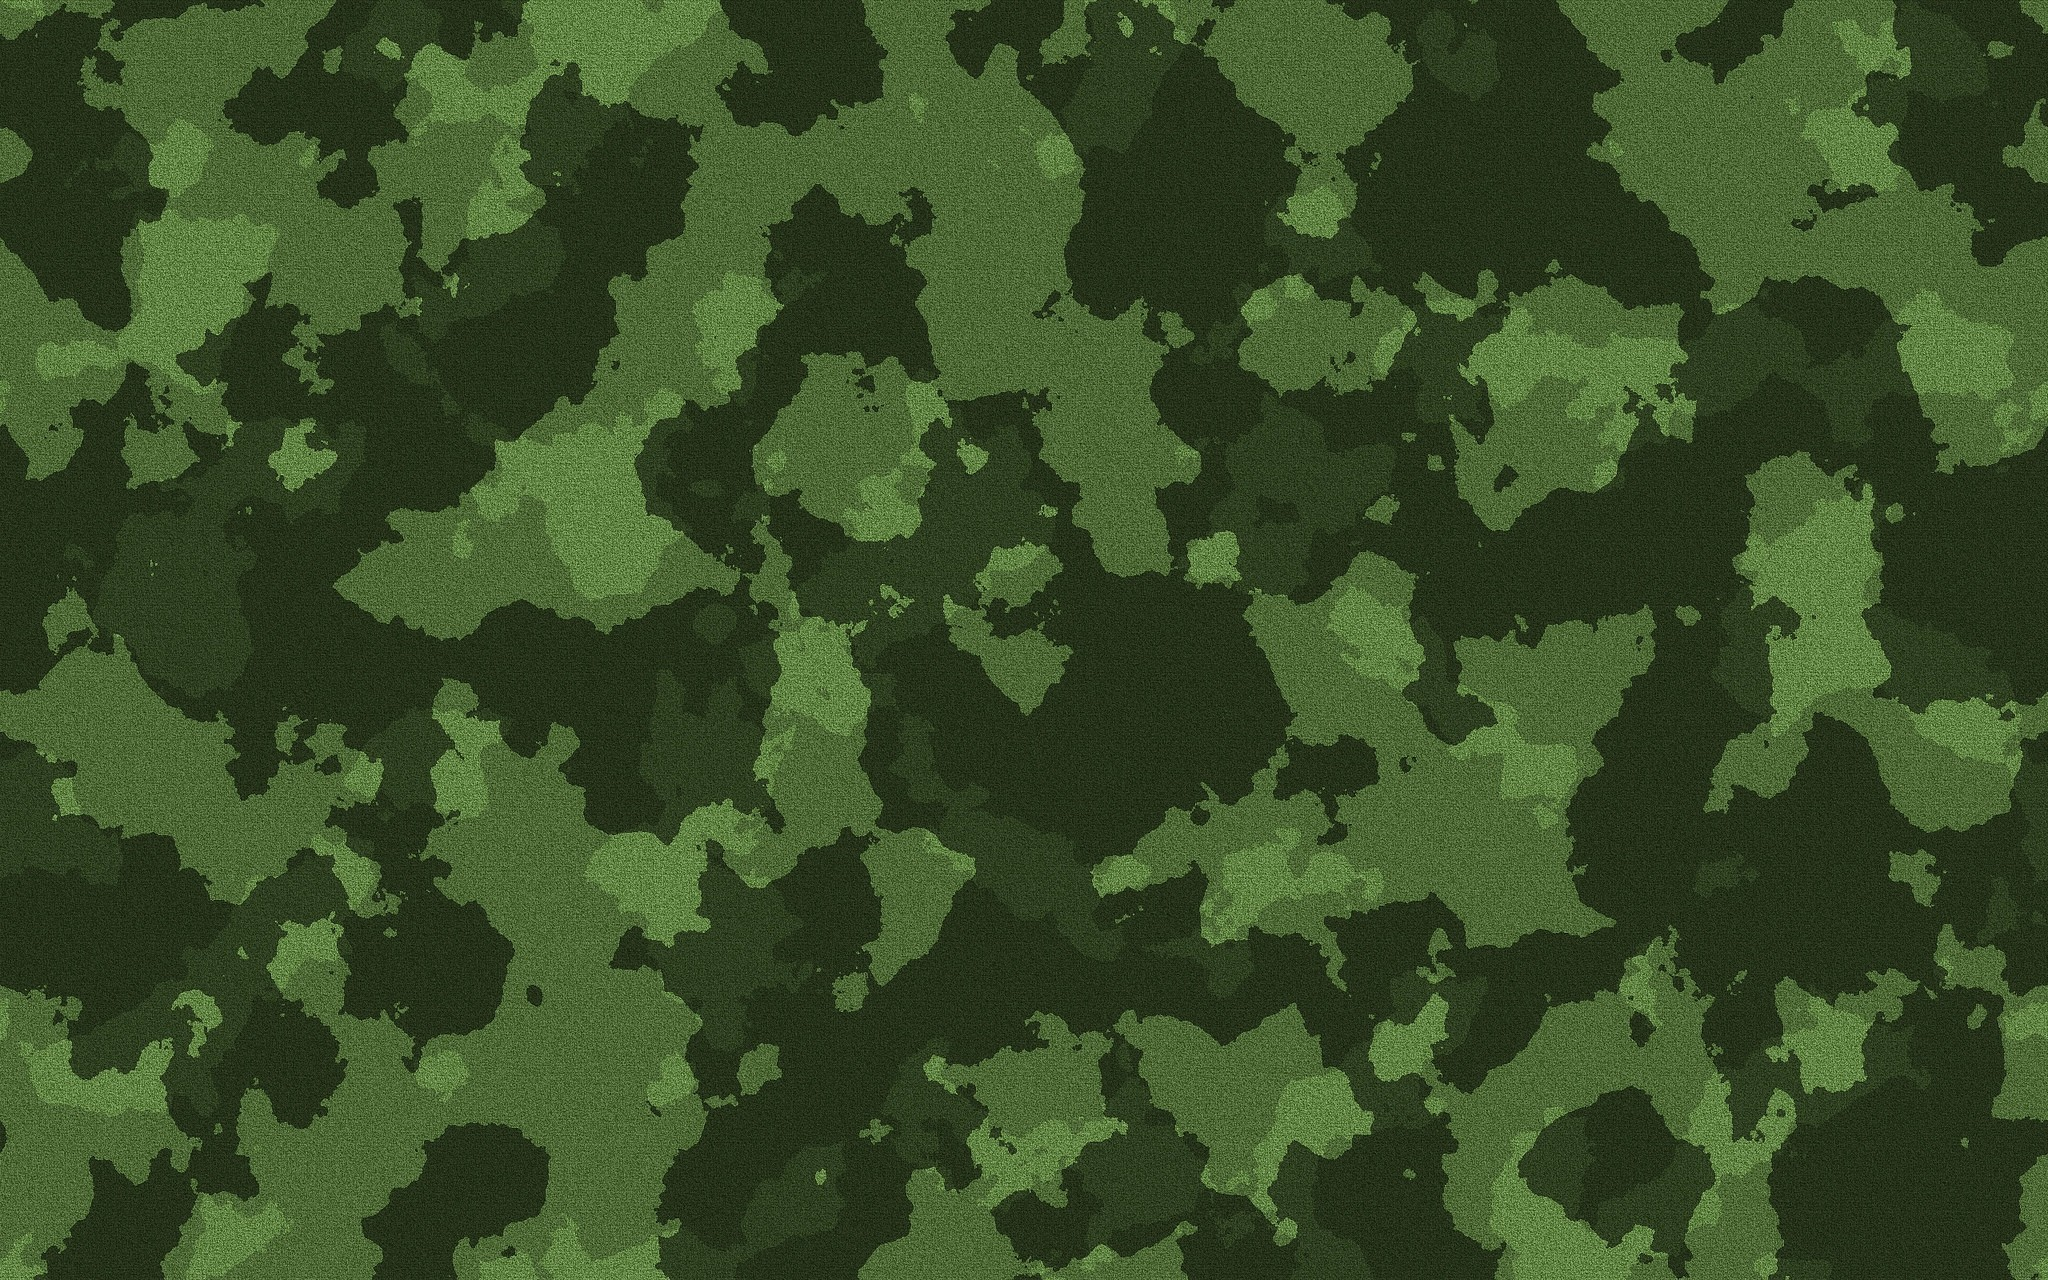 Camouflage Green Army Texture. Download Full Size File